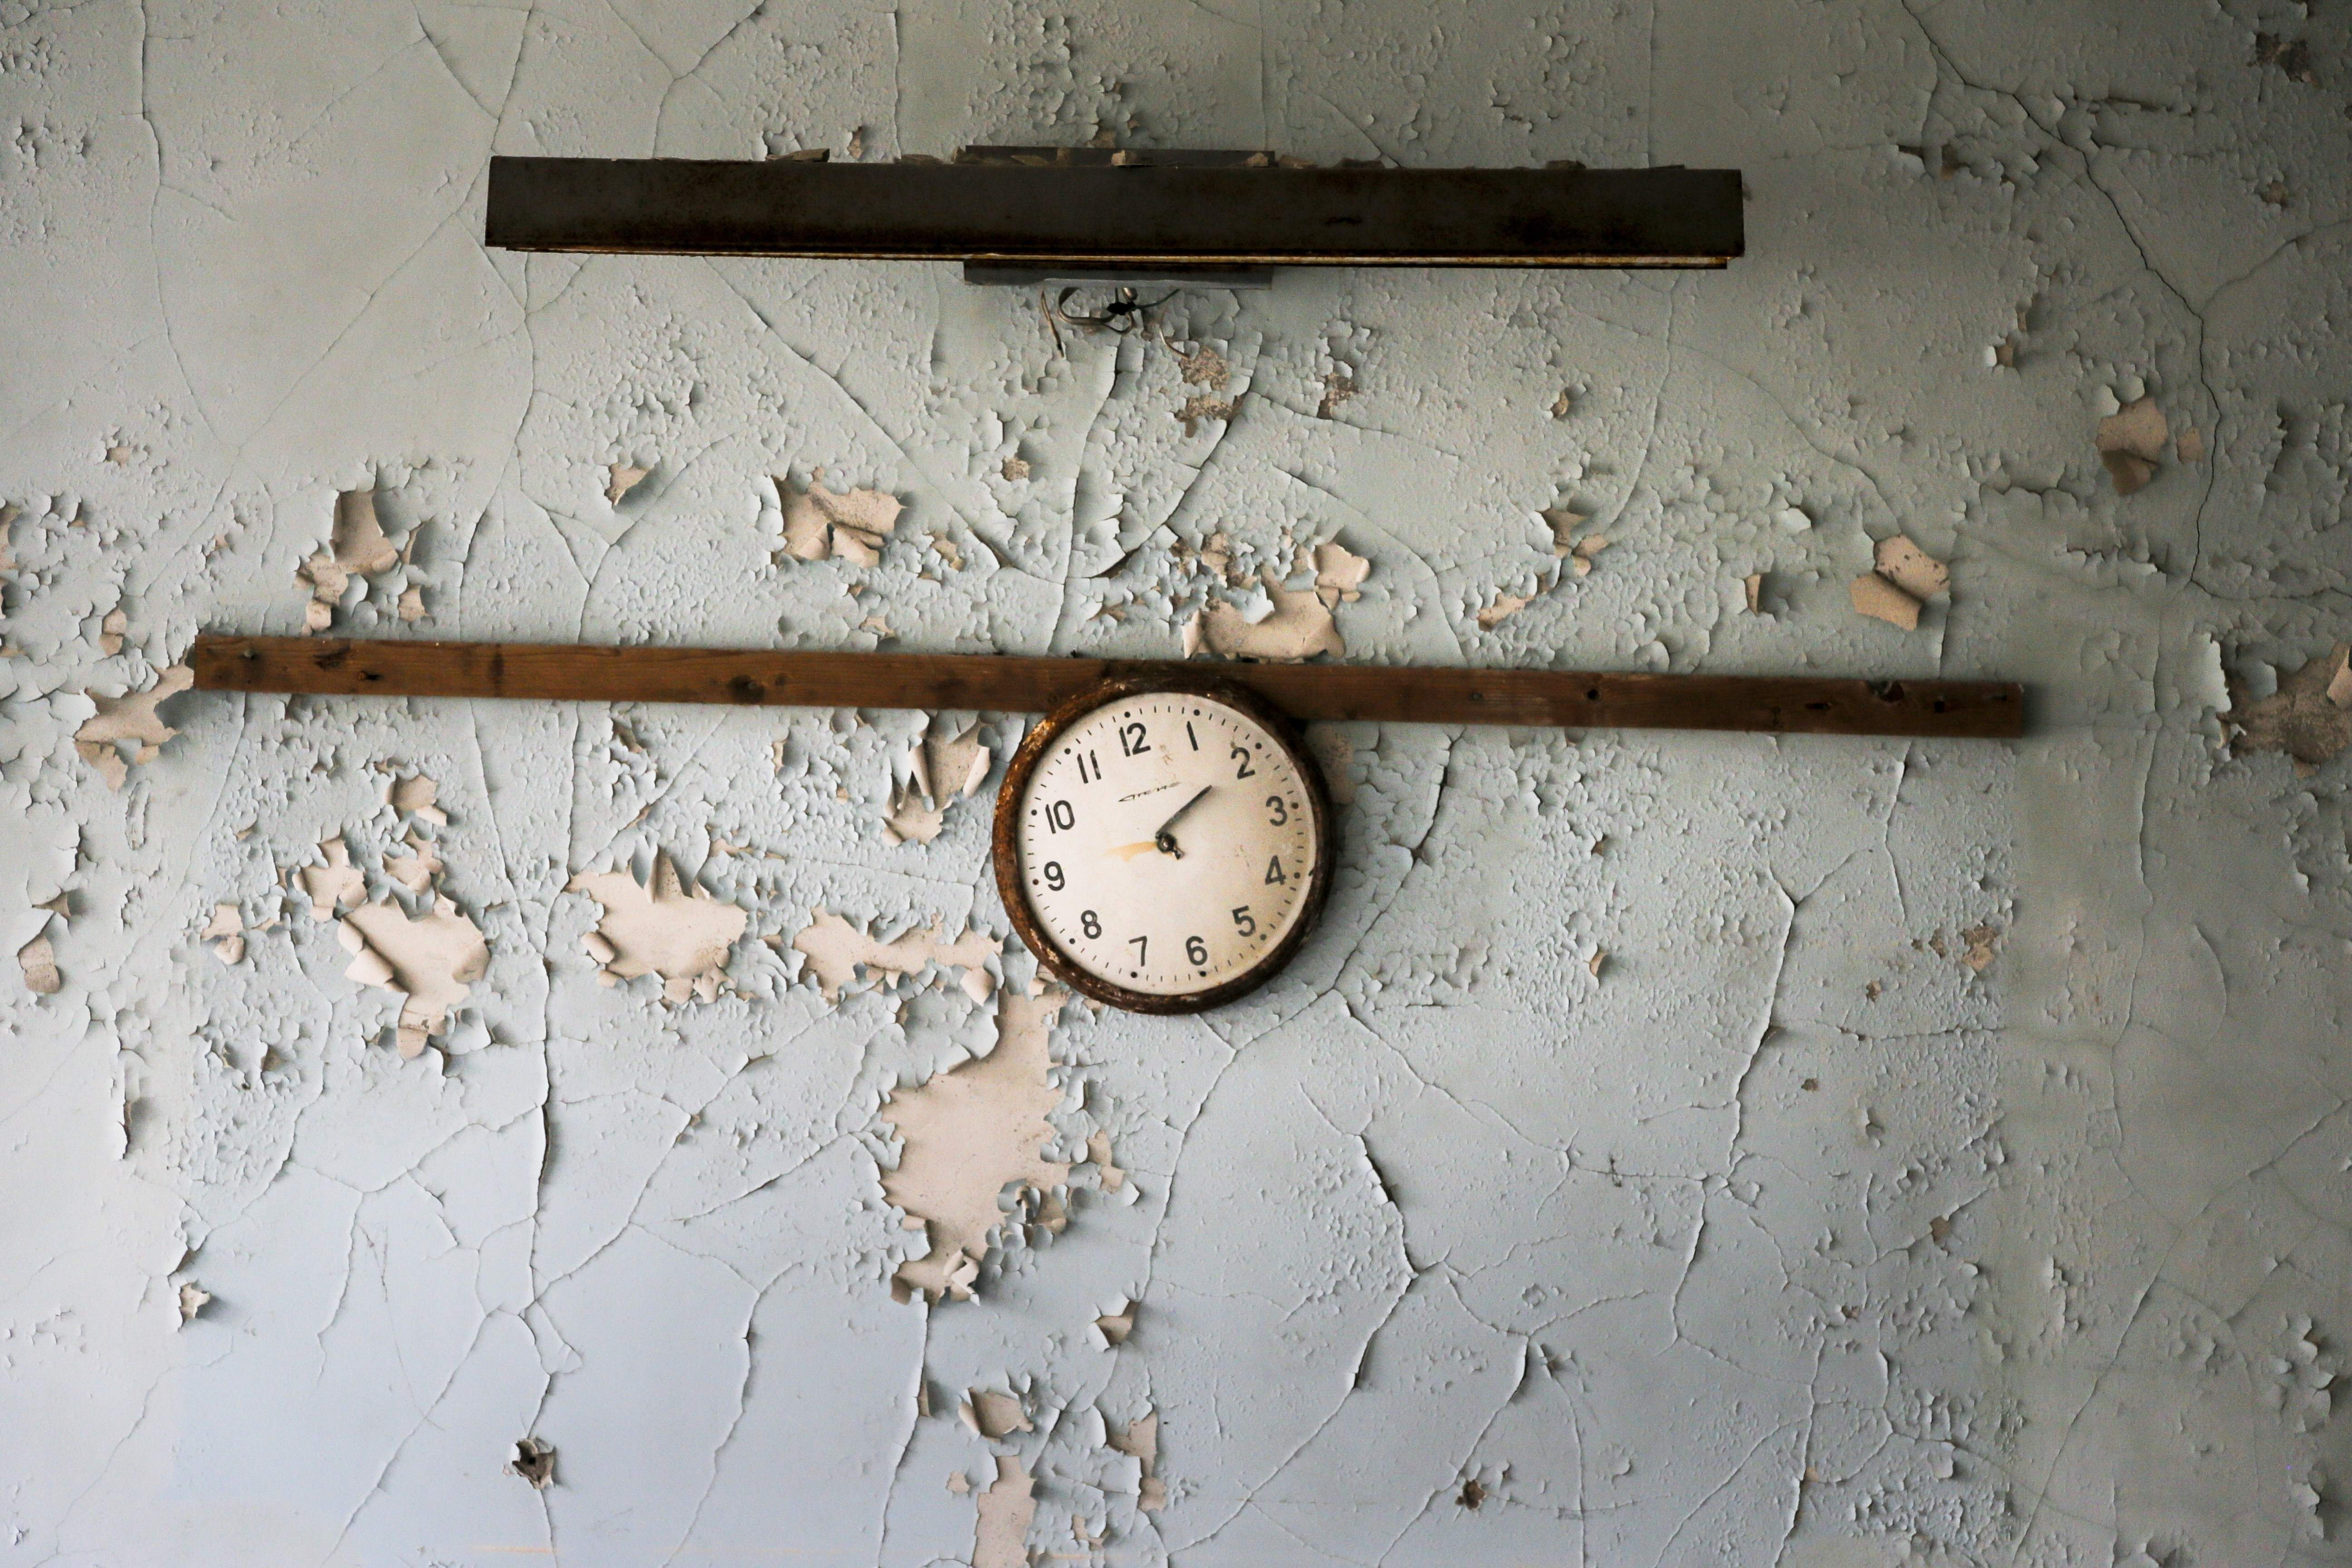 In this photo taken Wednesday, April 5, 2017, a broken clock hangs on a wall in a school in the deserted town of Pripyat, some 3 kilometers (1.86 miles) from the Chernobyl nuclear power plant Ukraine. Once home to some 50,000 people whose lives were connected to the Chernobyl nuclear power plant, Pripyat was hastily evacuated one day after a reactor at the plant 3 kilometers (2 miles away) exploded on April 26, 1986. The explosion and the subsequent fire spewed a radioactive plume over much of northern Europe. THE ASSOCIATED PRESS